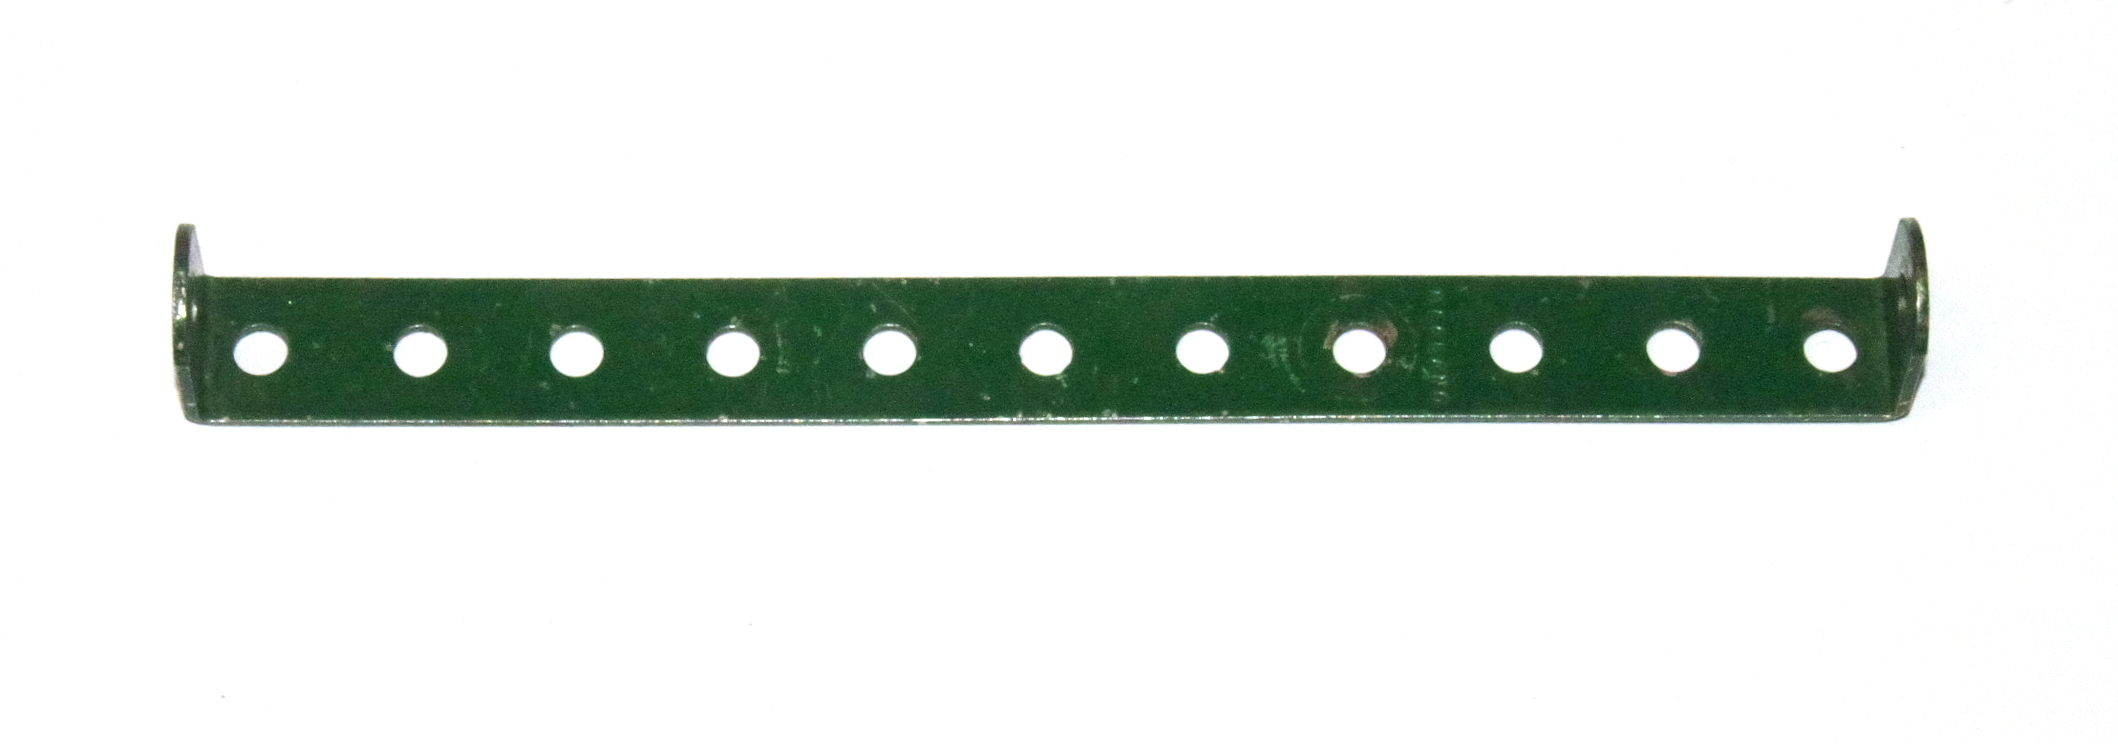 48d Double Angle Strip 1x11x1 Dark Green Original